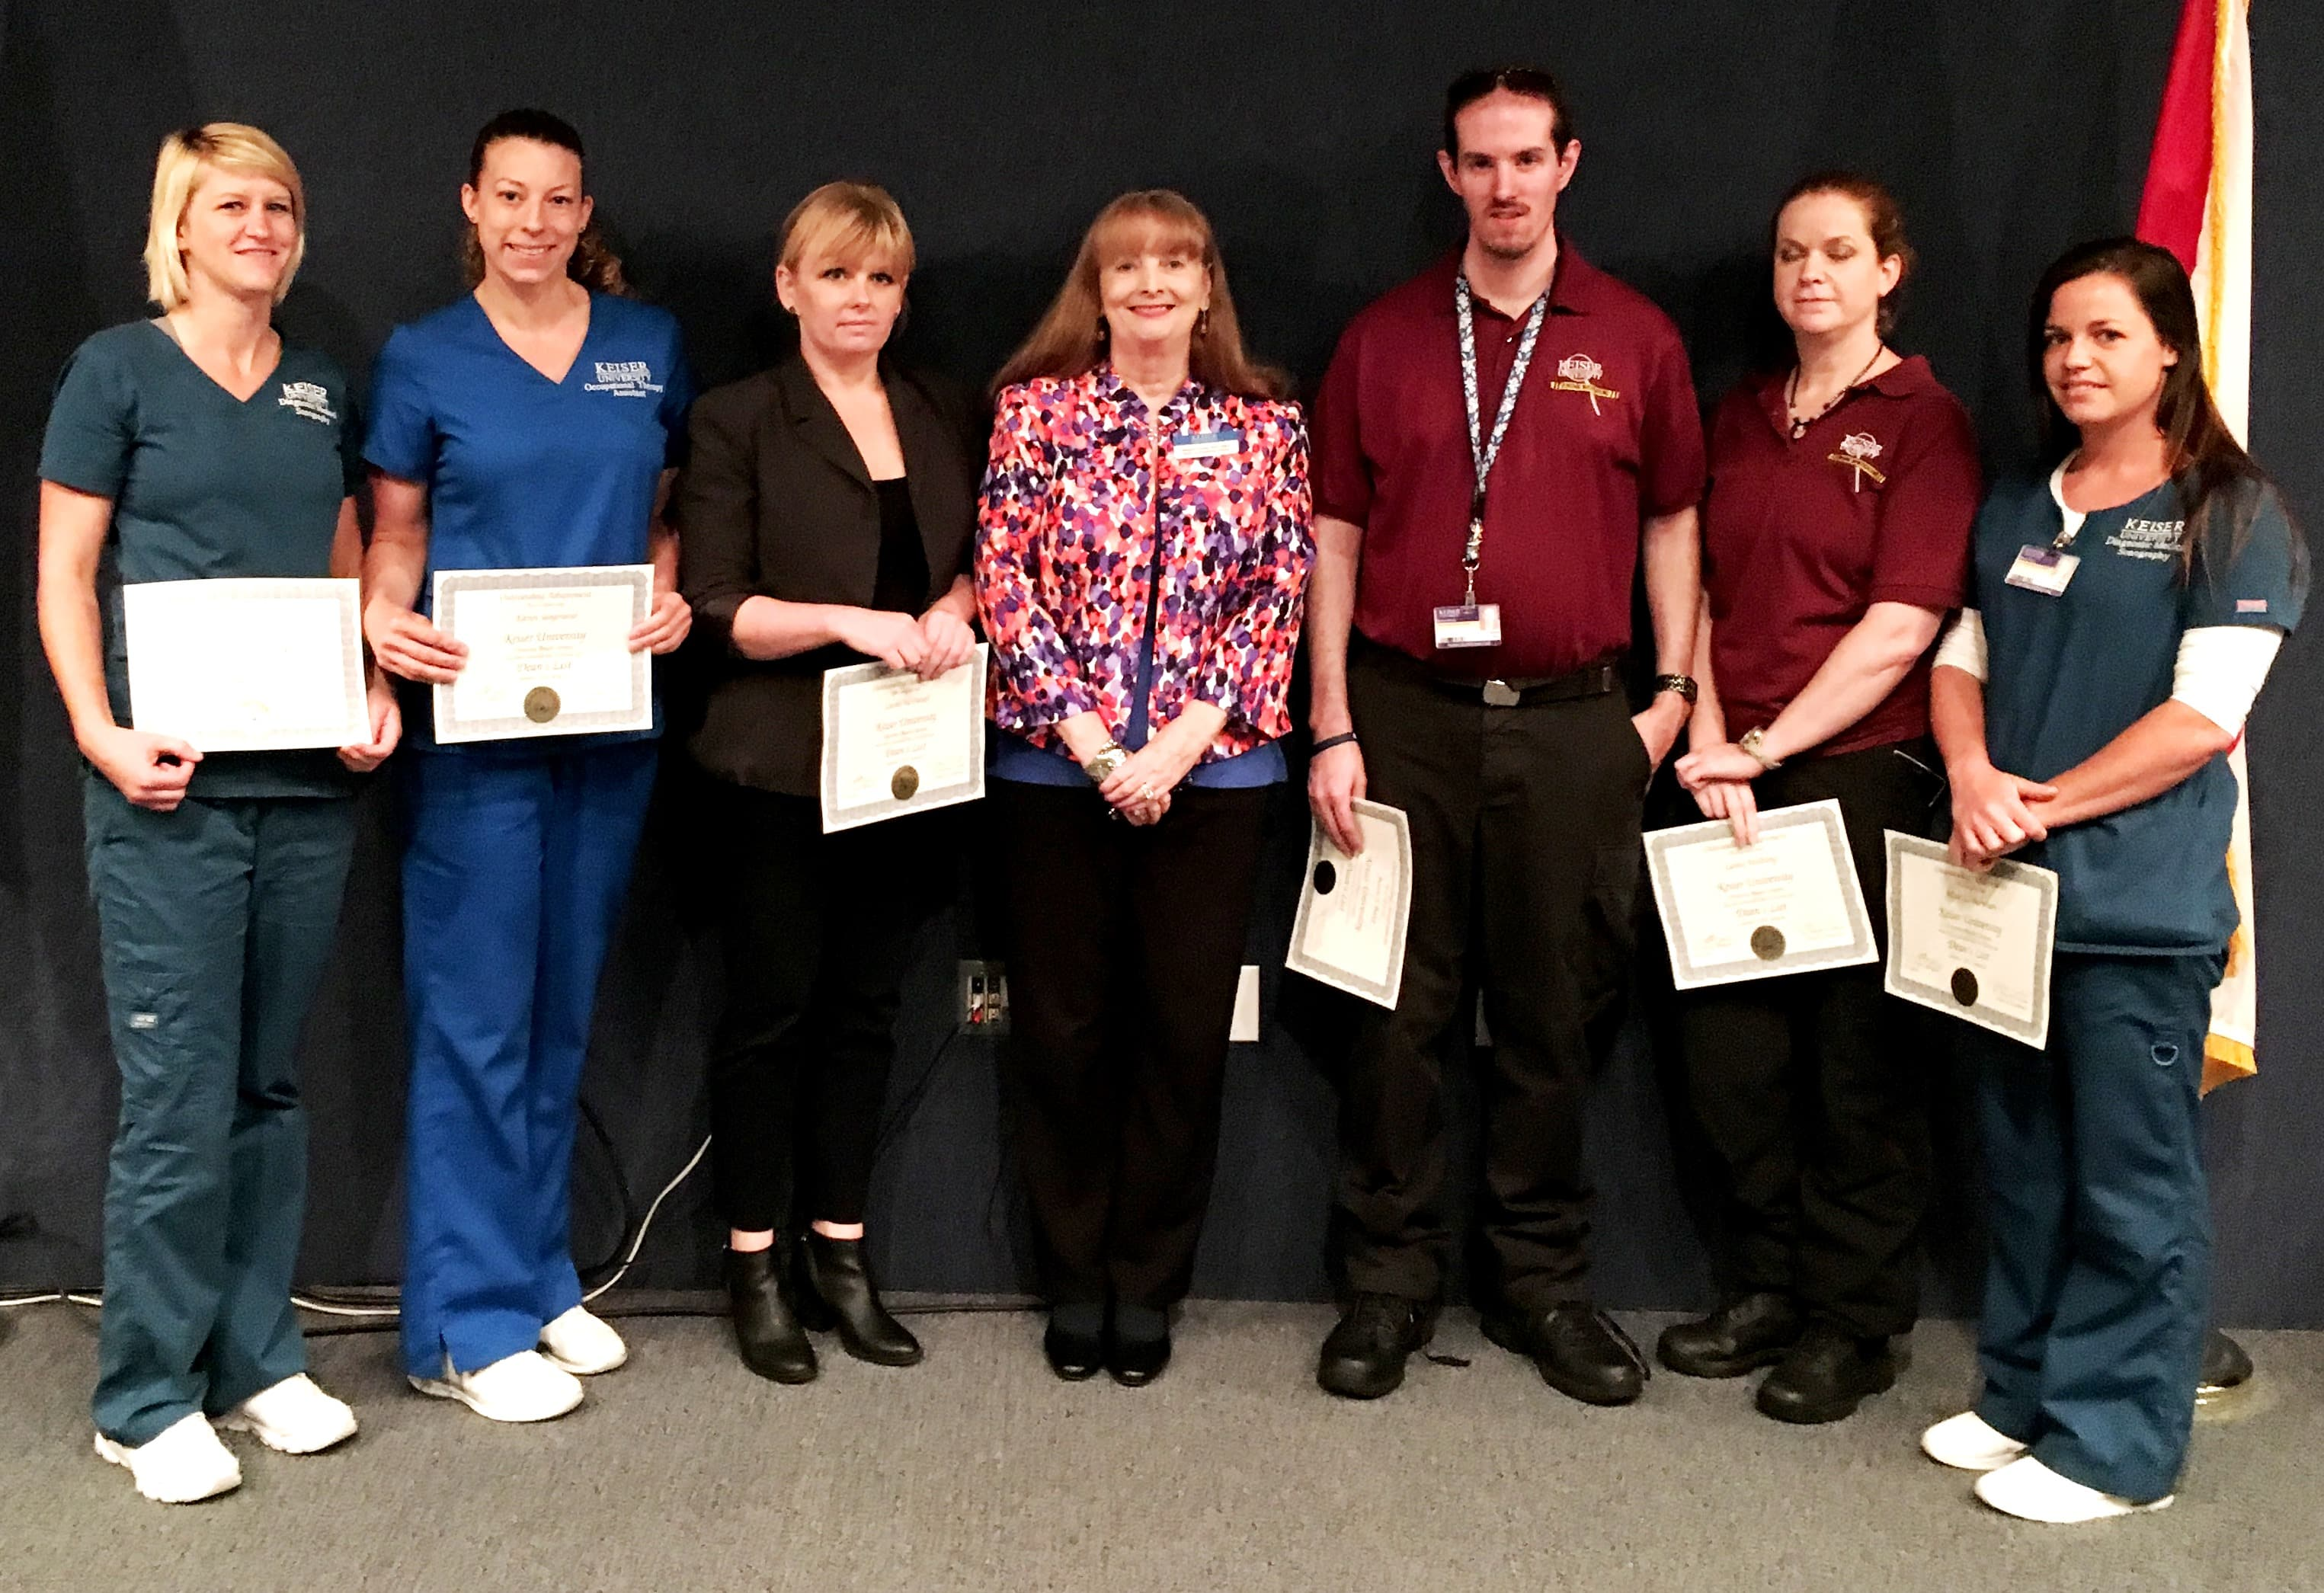 Academic Achievements Celebrated at the Daytona Beach Campus